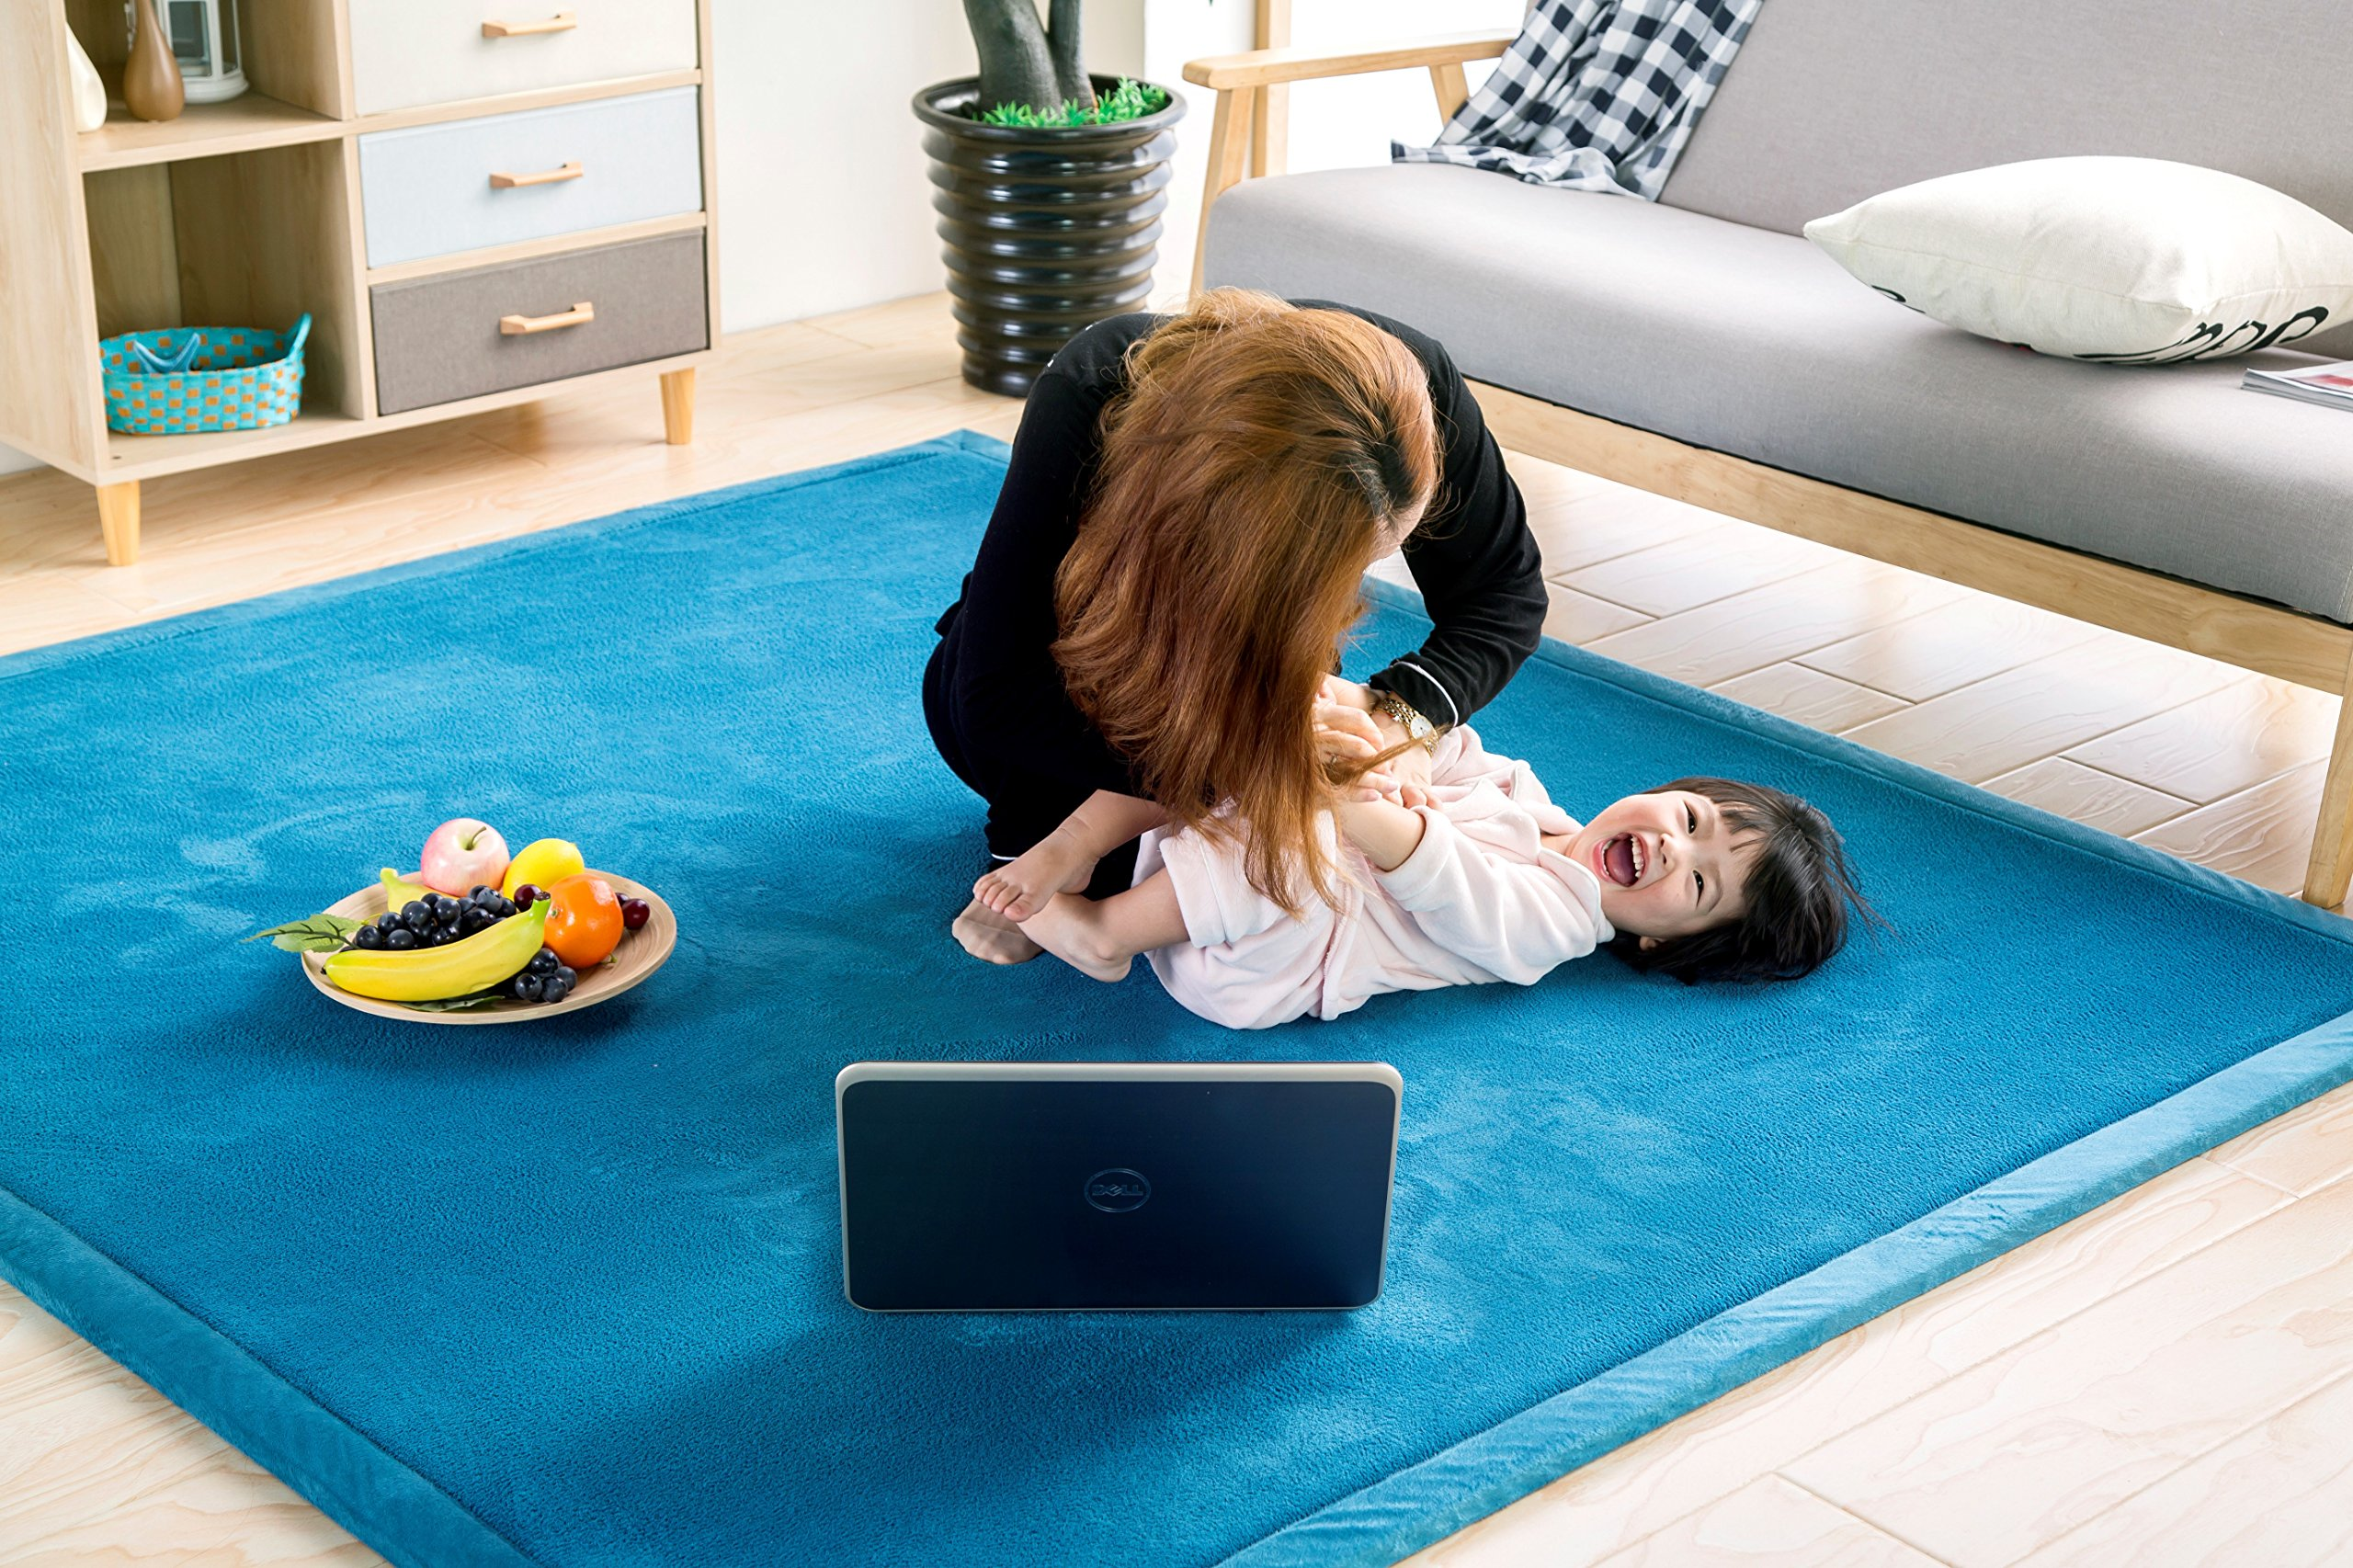 Baby Play Mat, V-mix Handmade weaving Plush Foam Play Crawling Rugs for Baby, Toddler, Children, Yoga Mat, Exercise Mat Cushy-Soft & Thick Hypoallergenic, Non-toxic, Reversible …